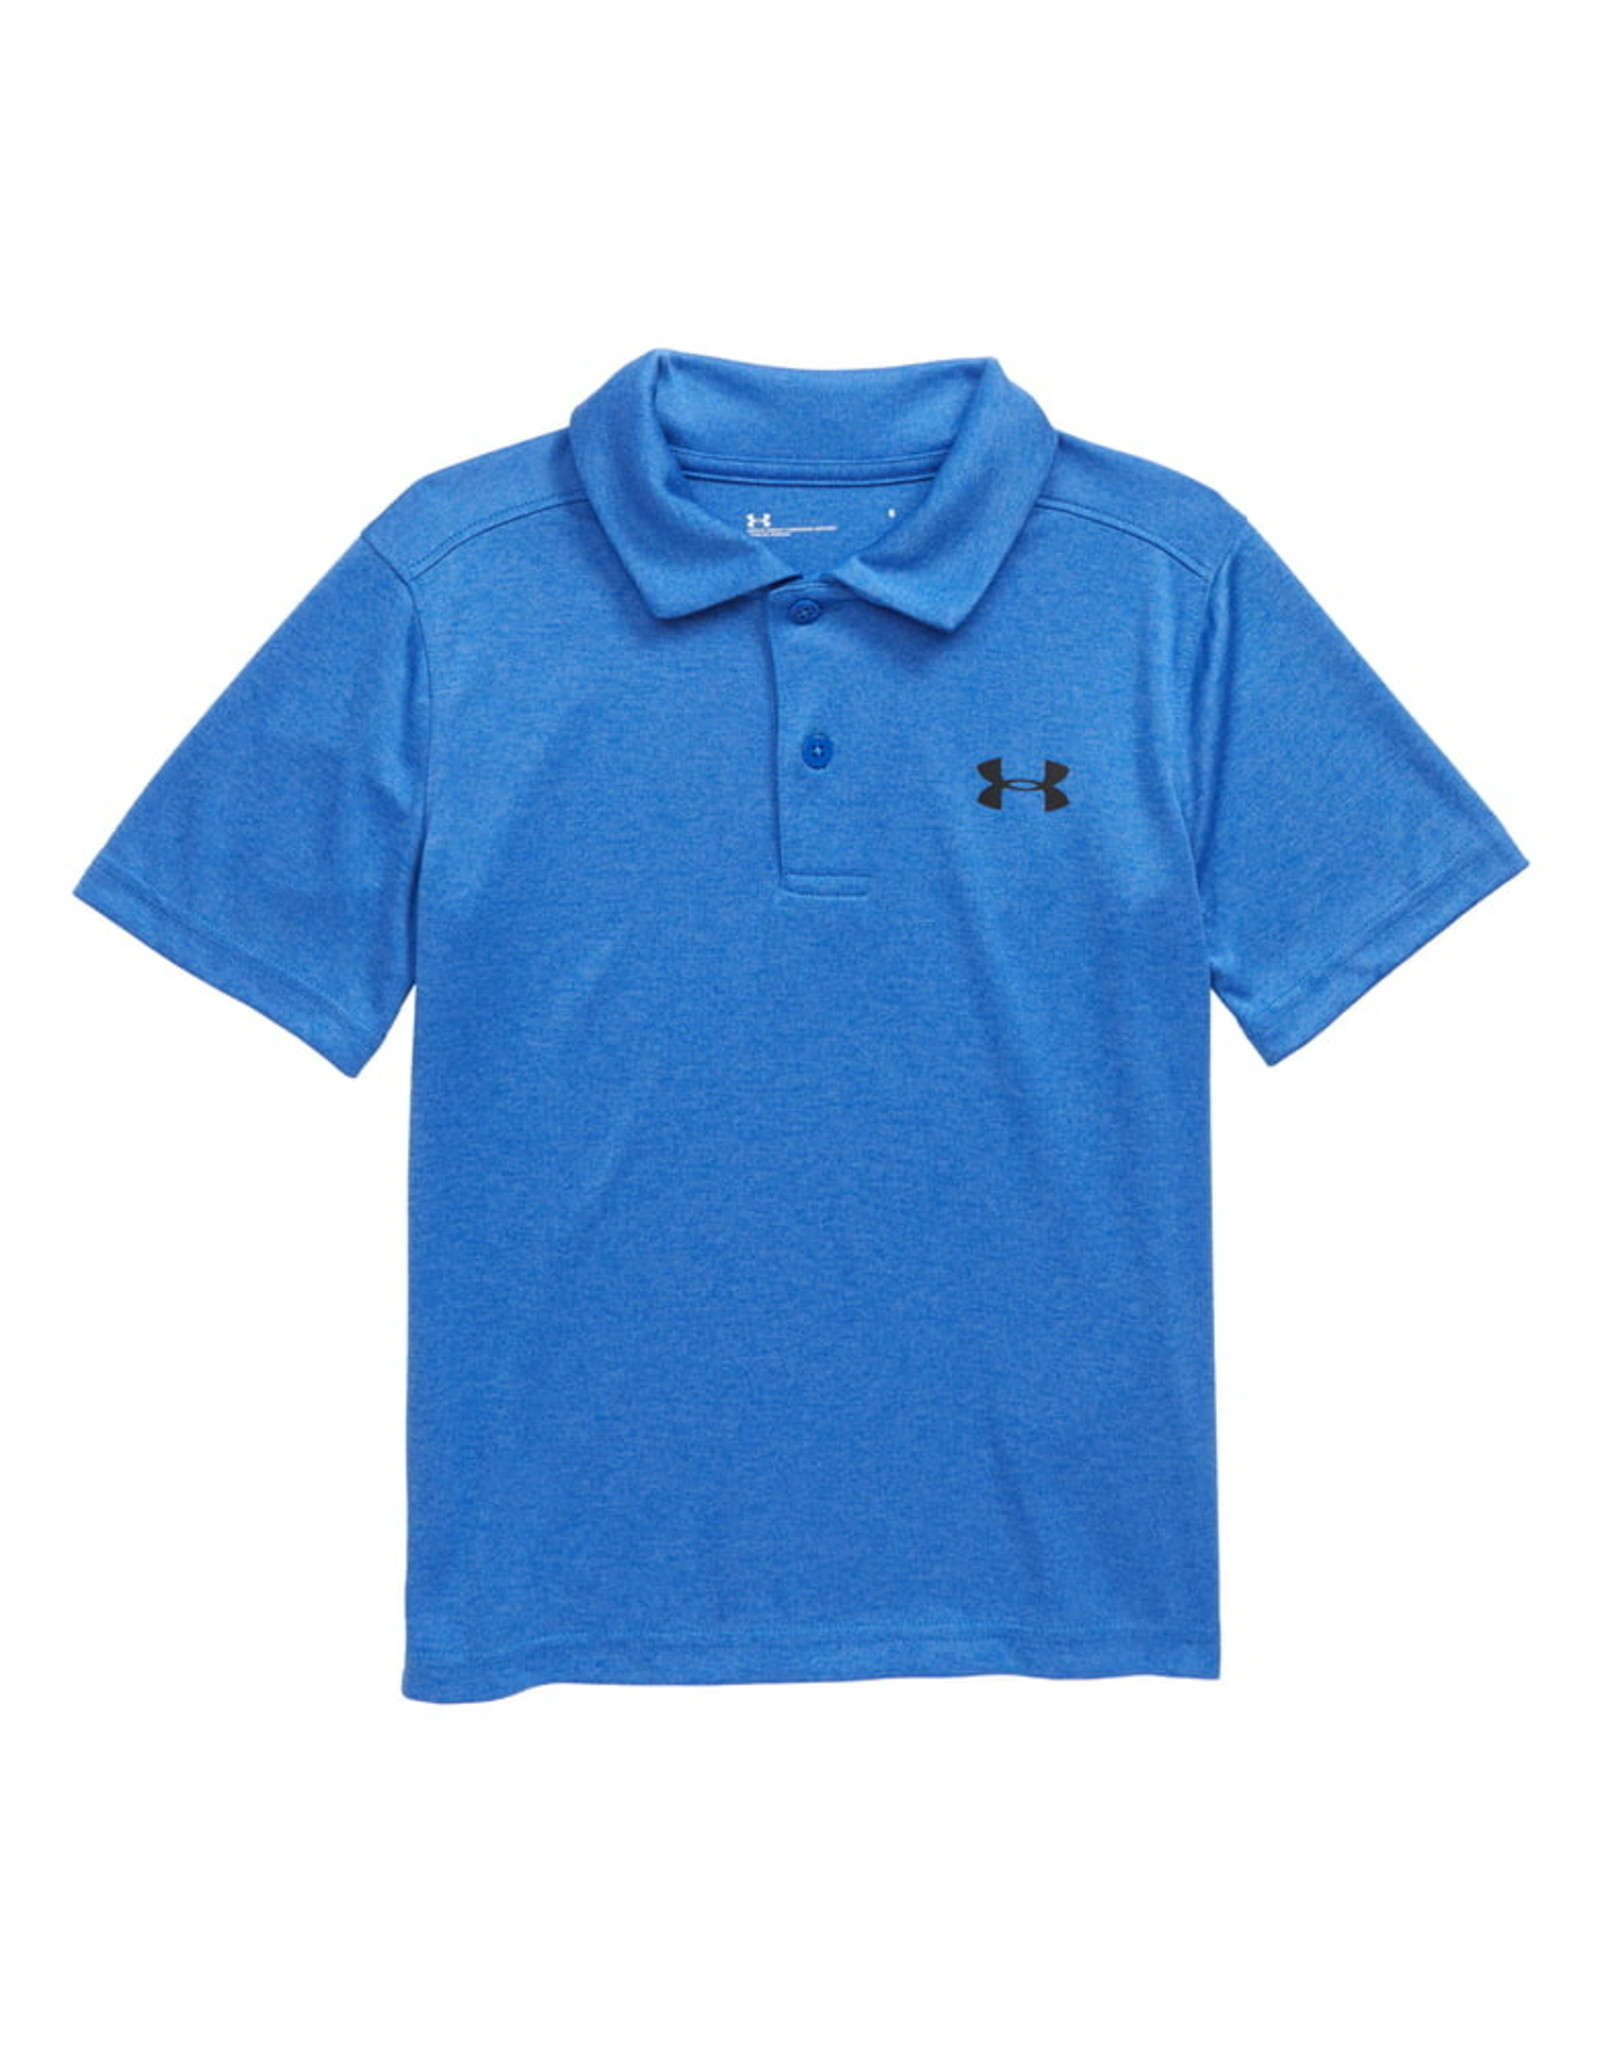 Under Armour Match Play Twist Polo T-Shirt Blue